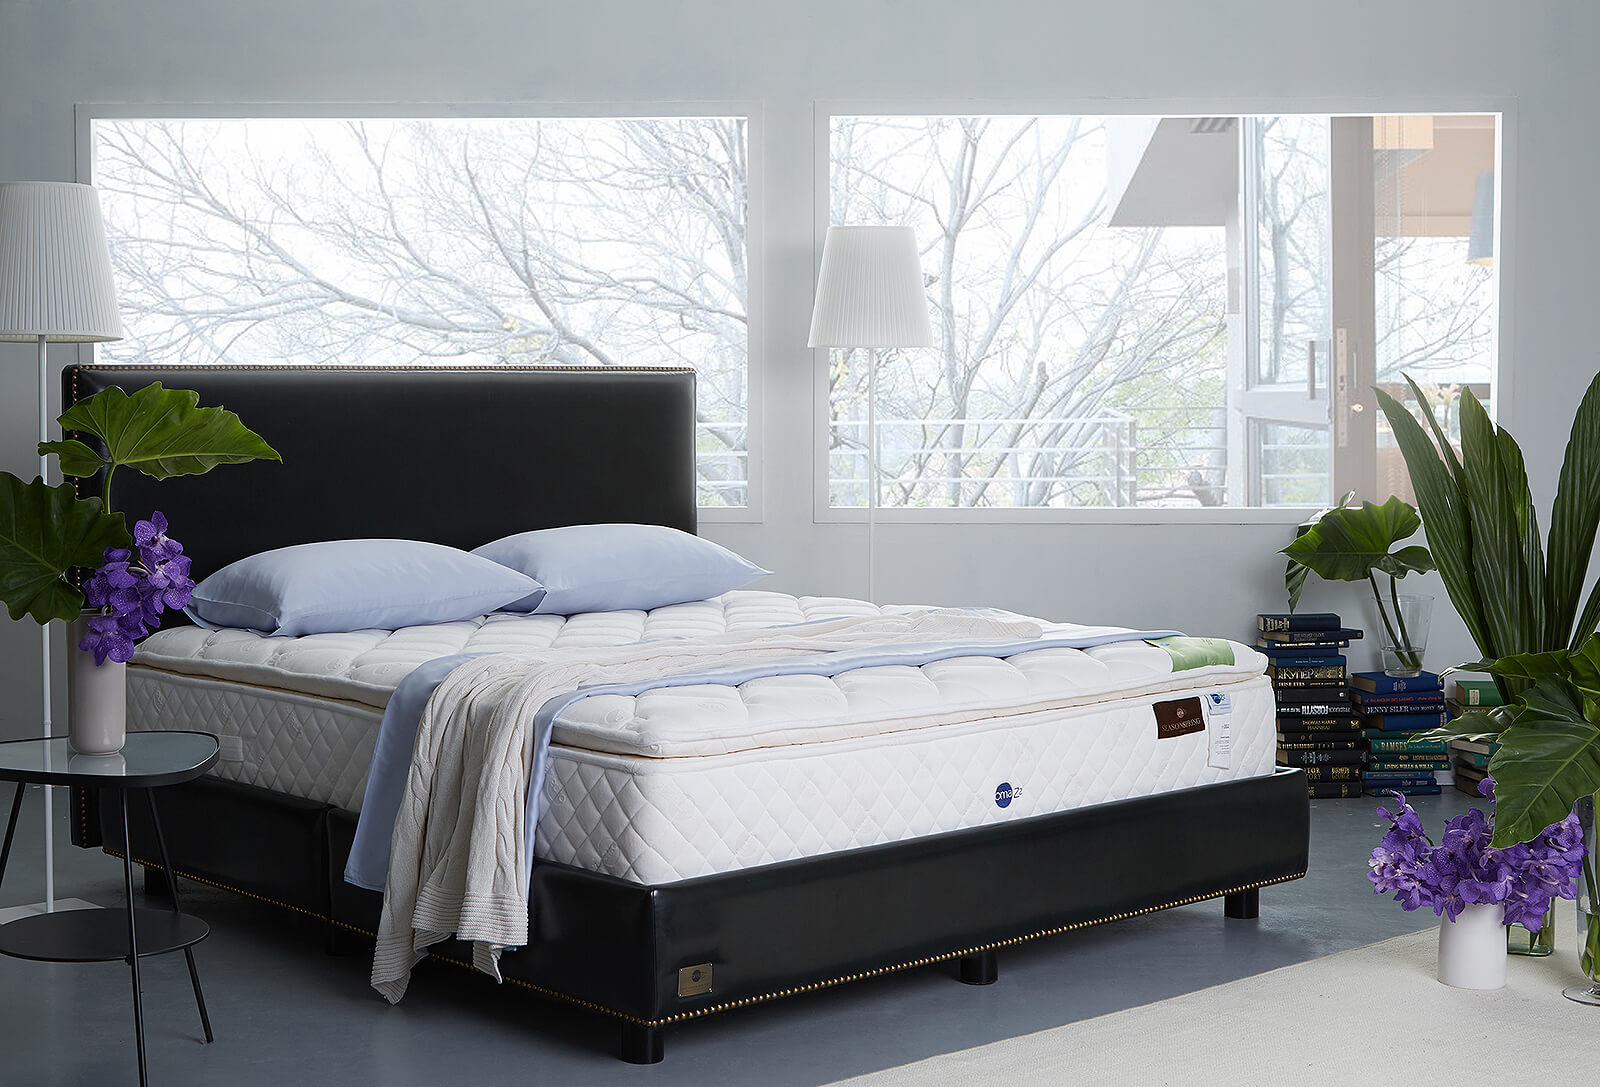 Omazz Mattress Grand Felicia